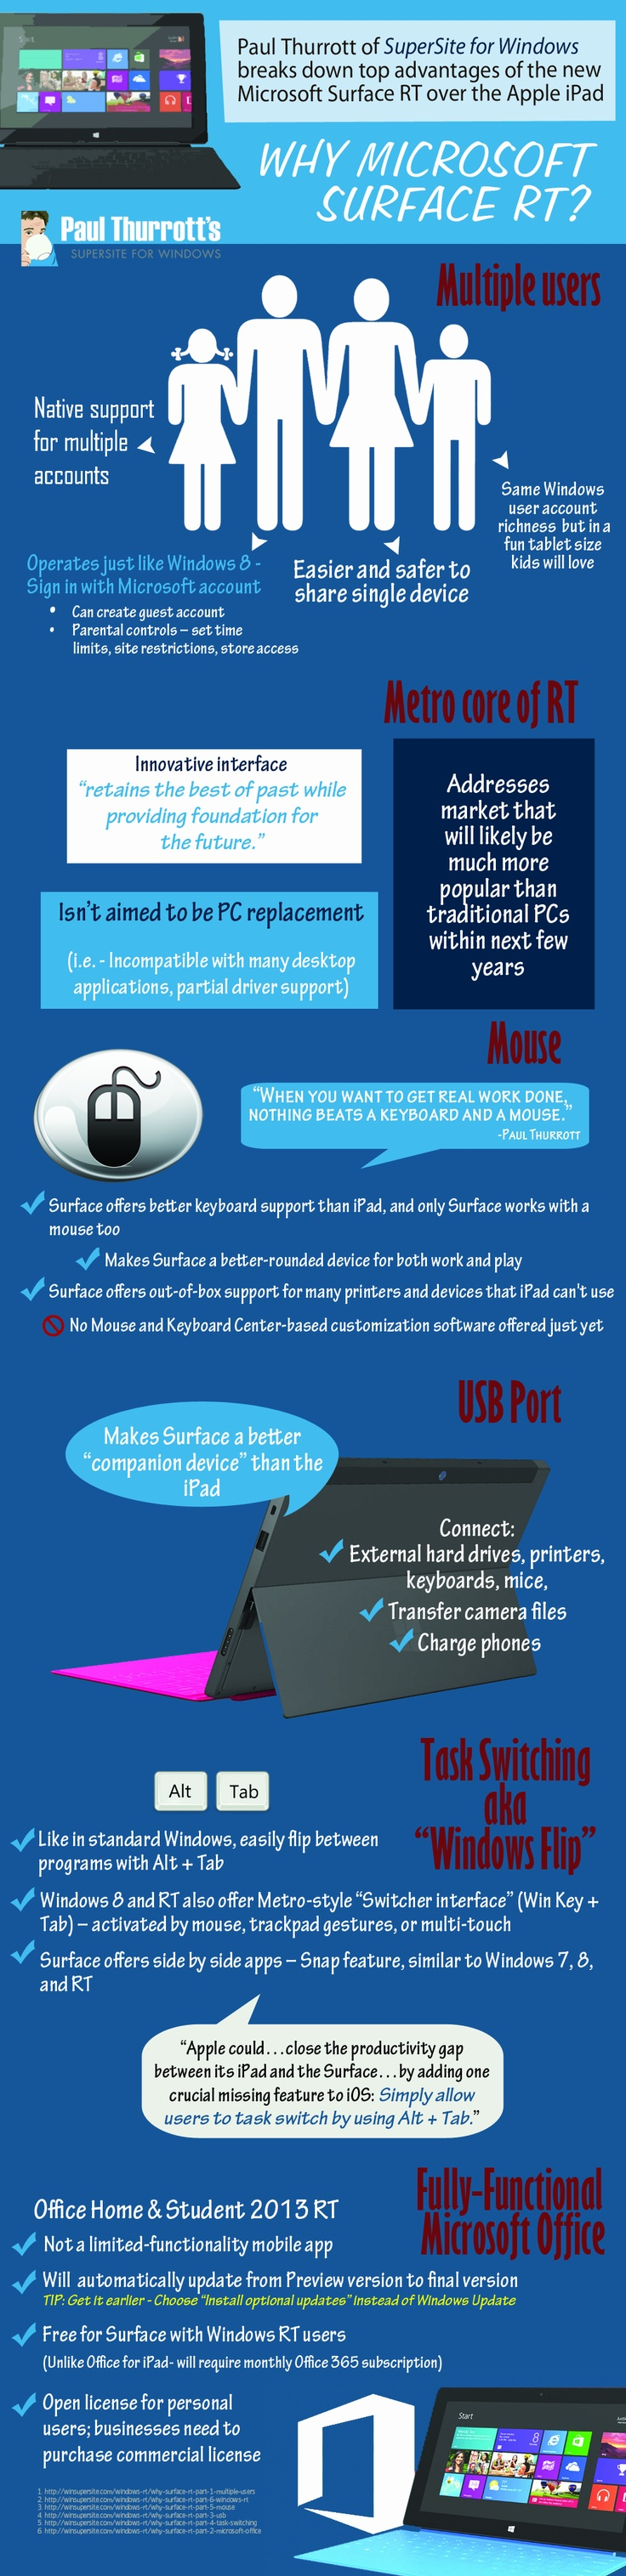 Why Surface RT? [Infographic] | Windows RT content from Paul Thurrott's SuperSite for Windows